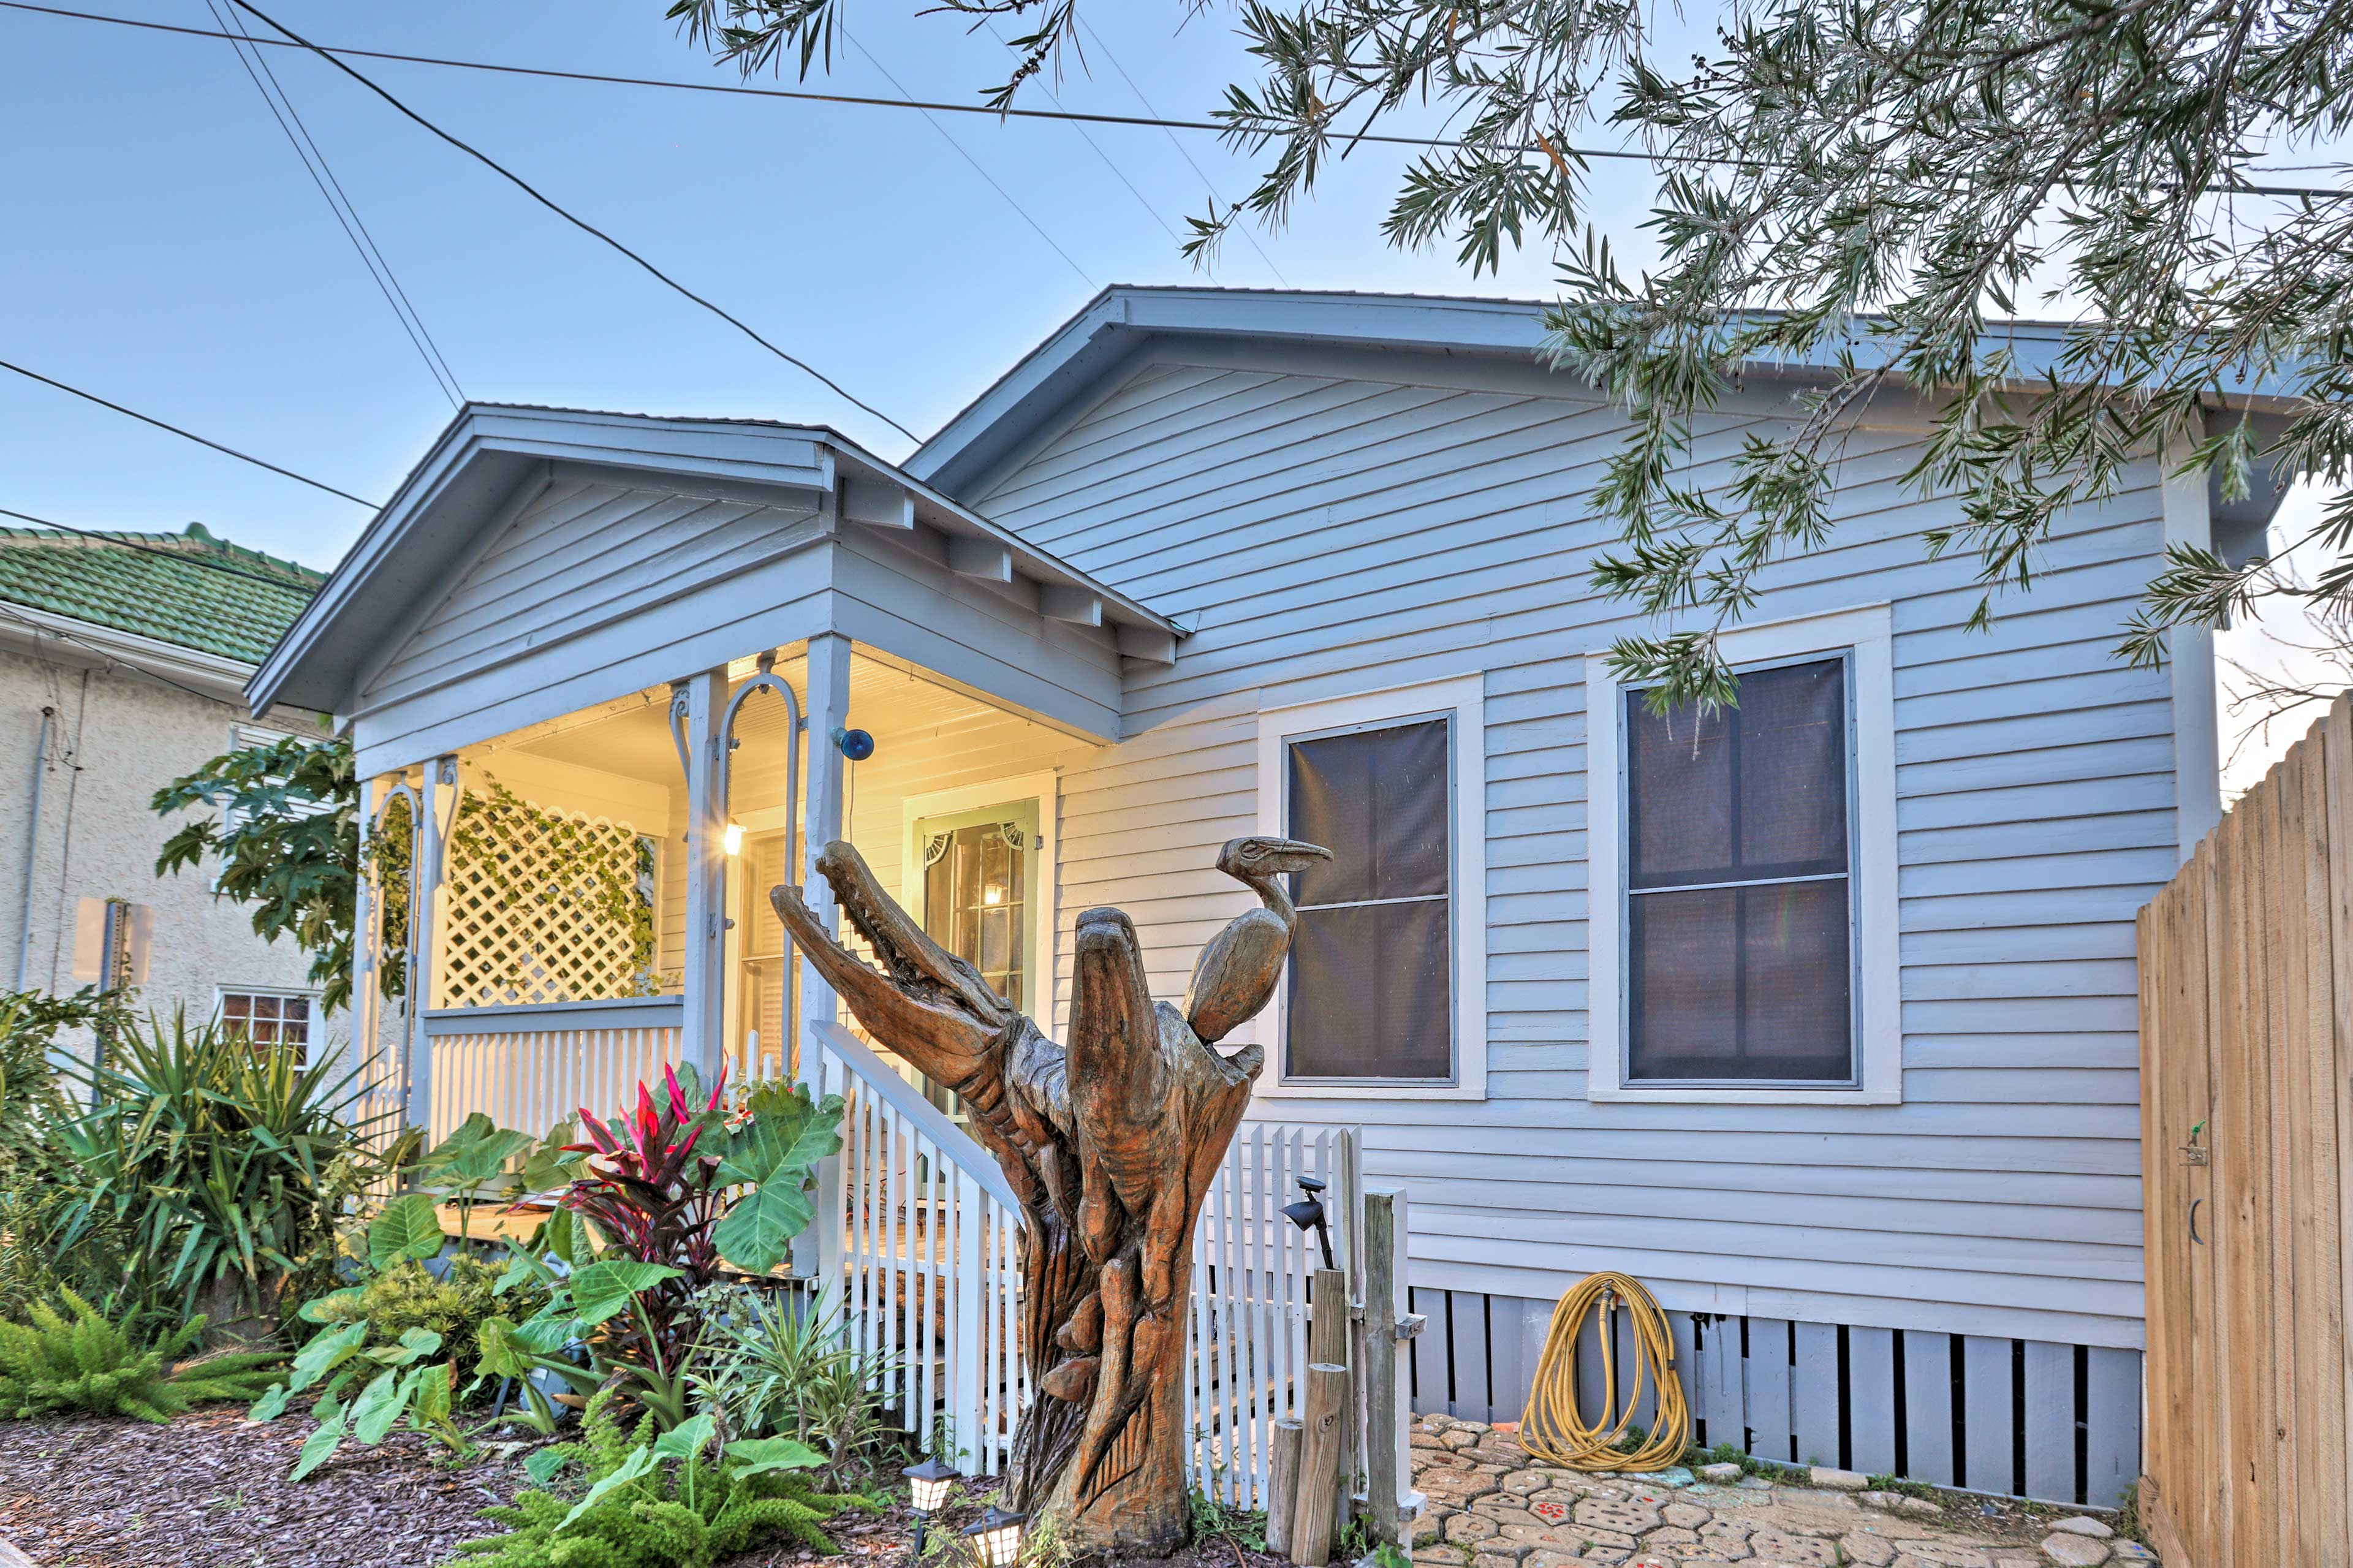 The cottage is part of the Galveston Tree Sculpture Tour!